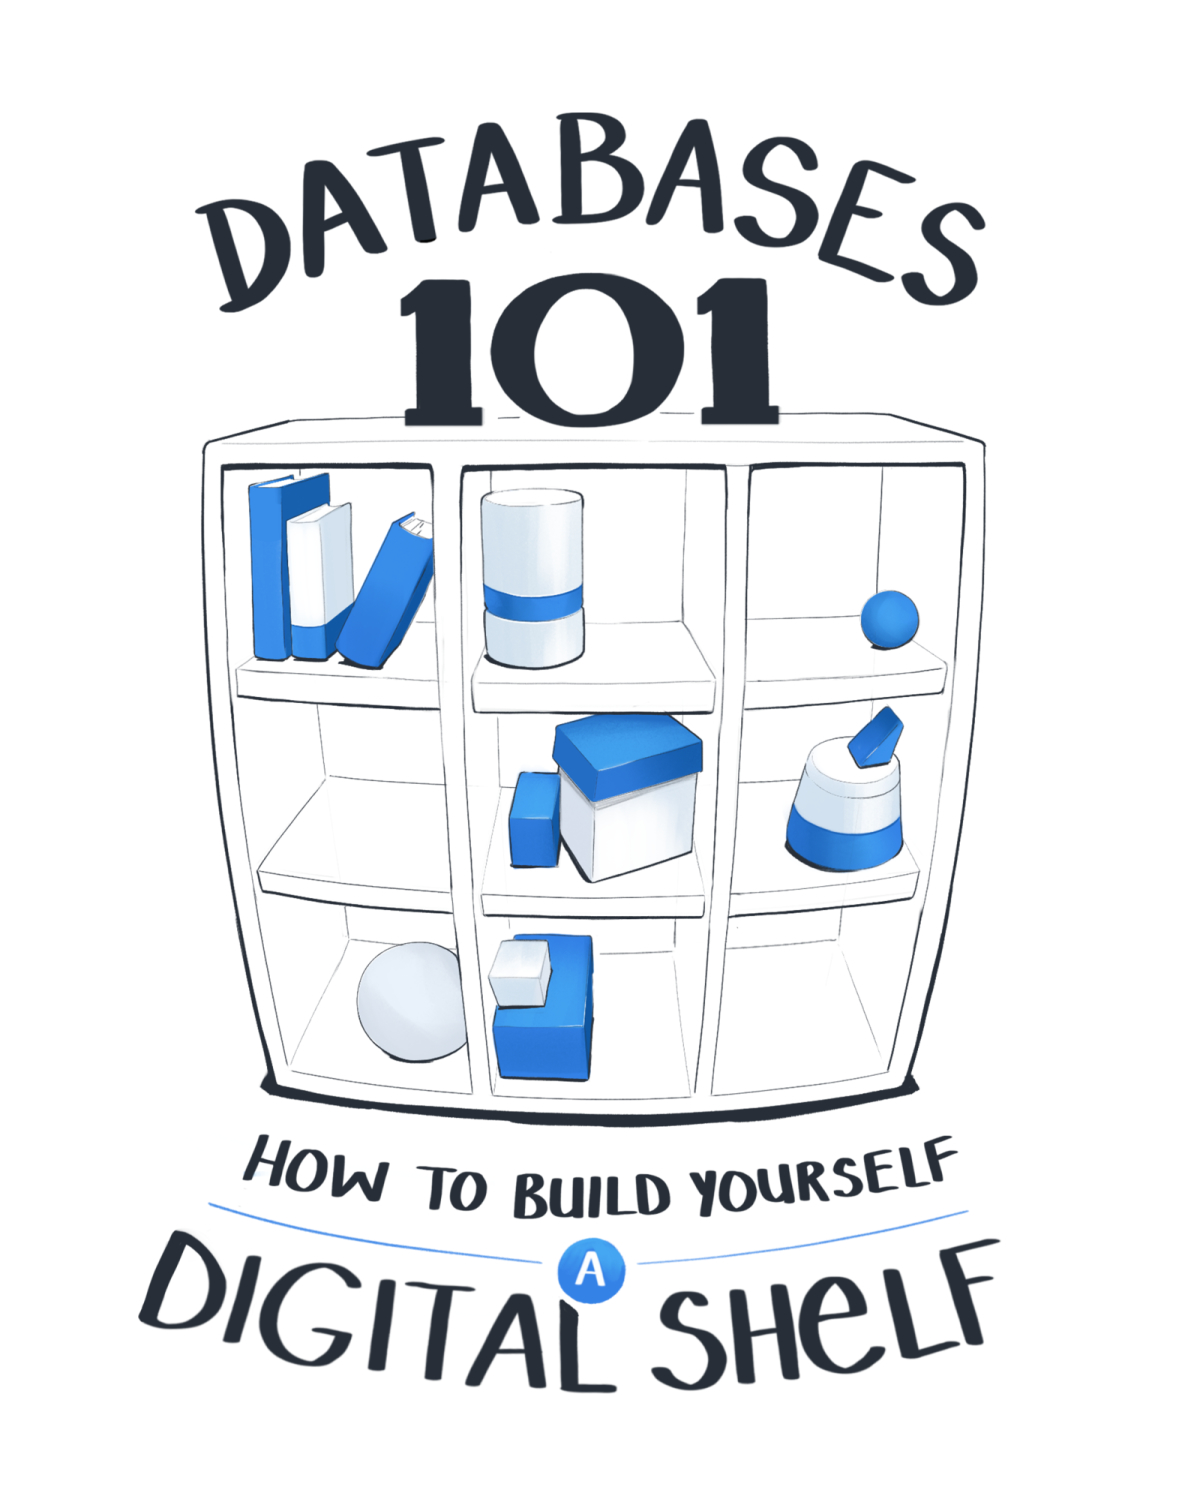 Databases 101 - How to build yourself a digital shelf